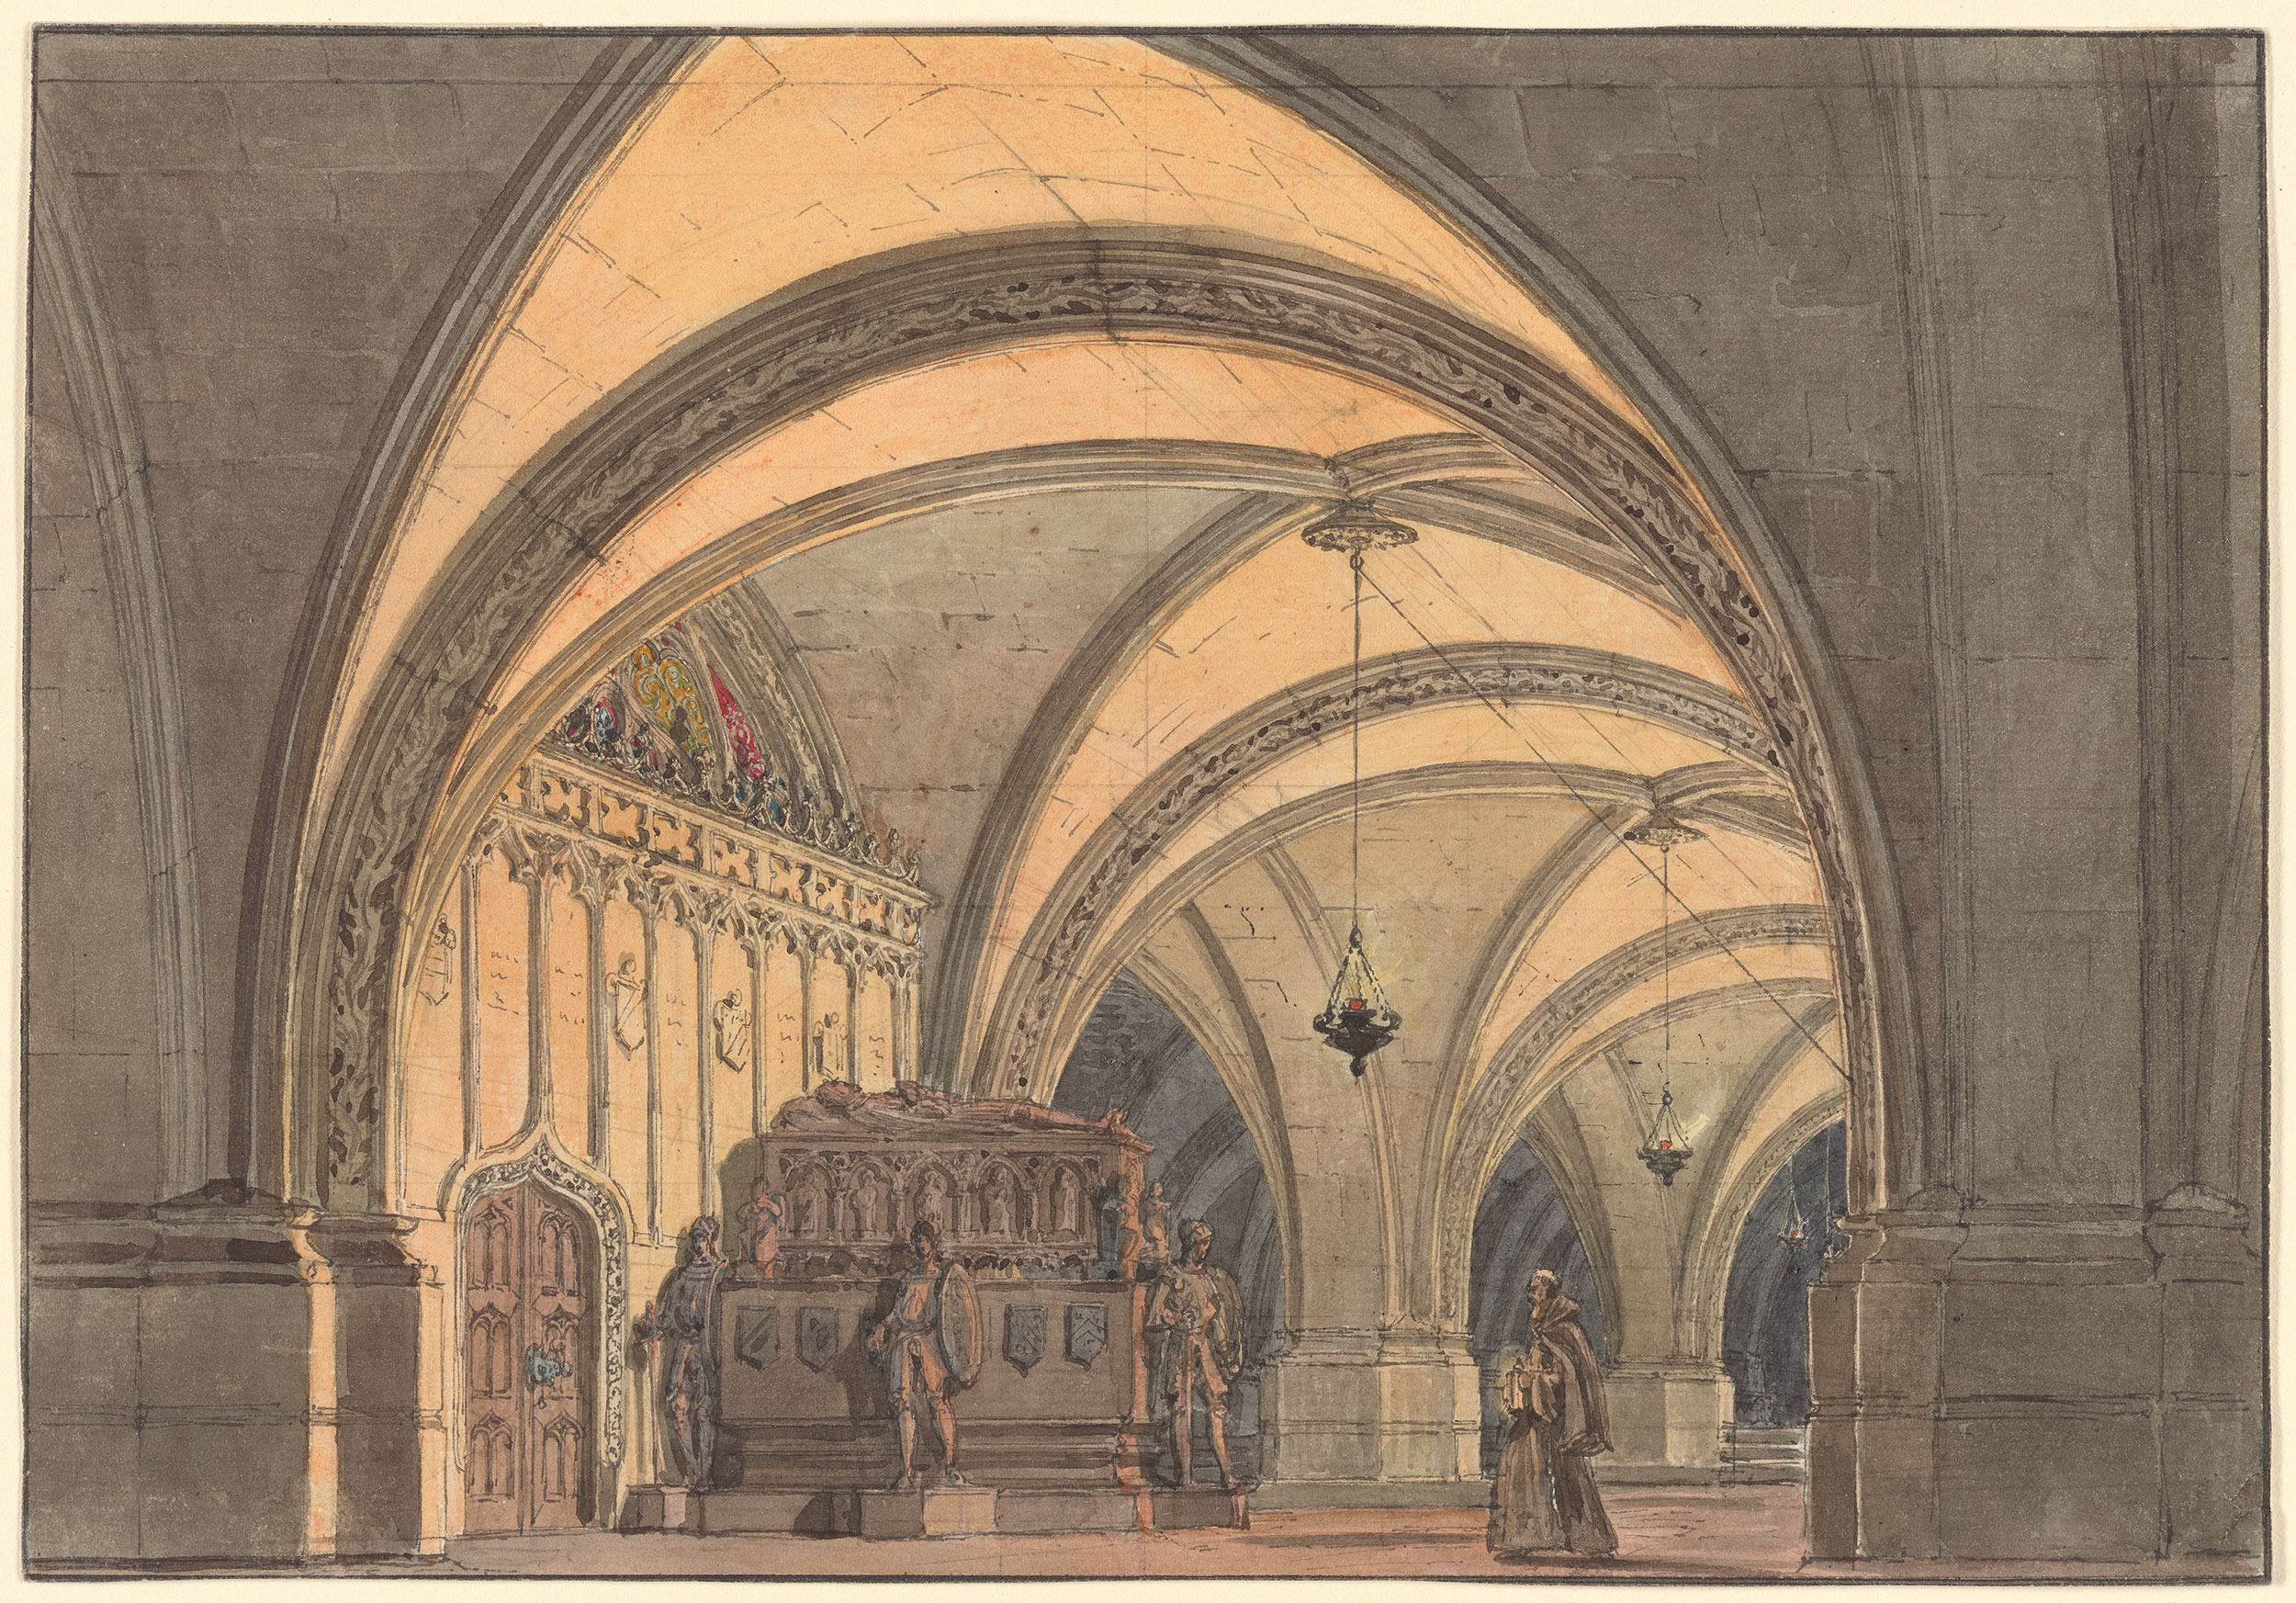 """Andreas Leonhard Roller. 1805-1880. Set Design for """"Ernani,"""" Act IV. 1863. Pen and black and gray watercolor over graphite on paper; framing lines in black ink."""